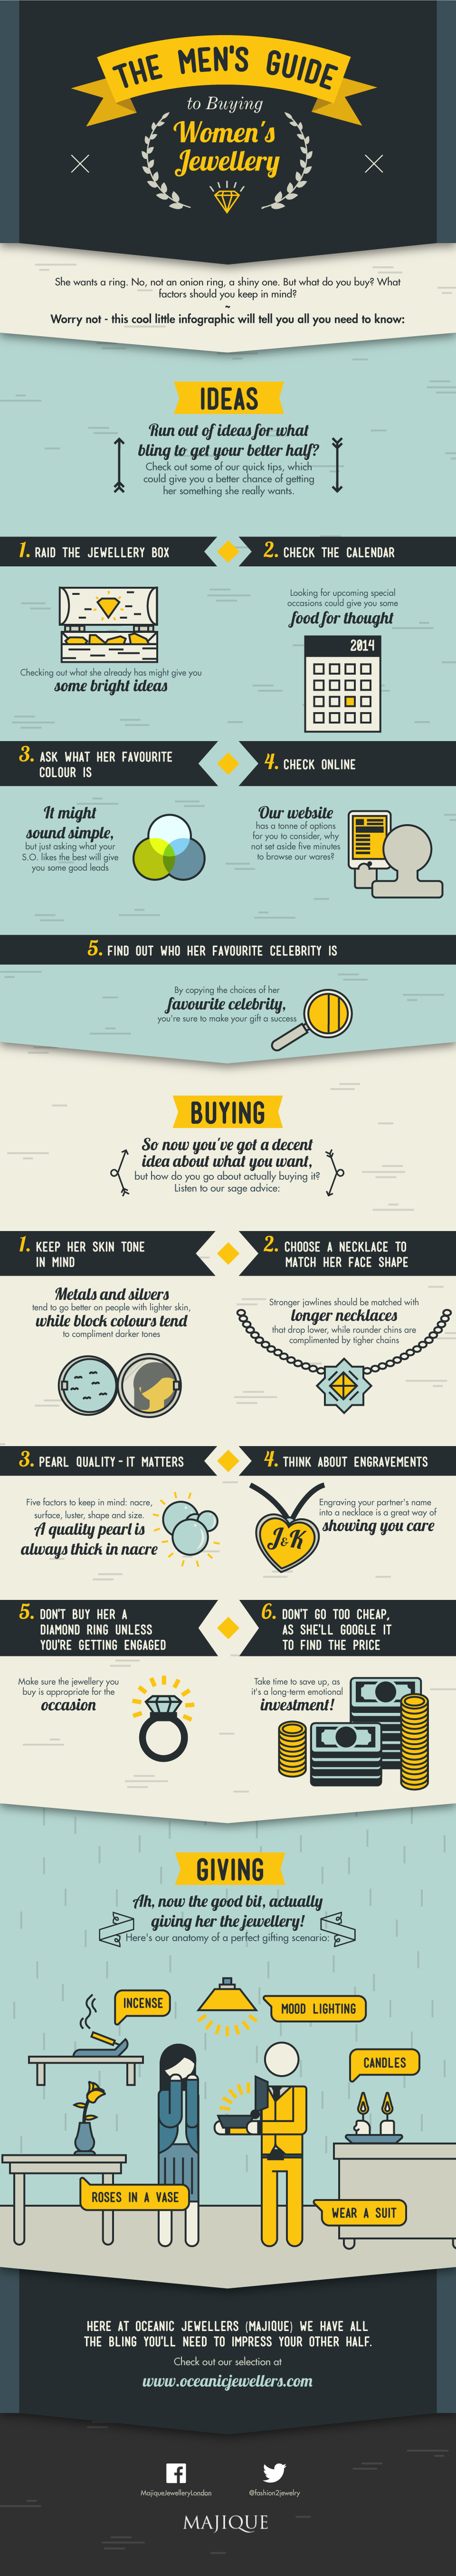 how to buy women jewellery